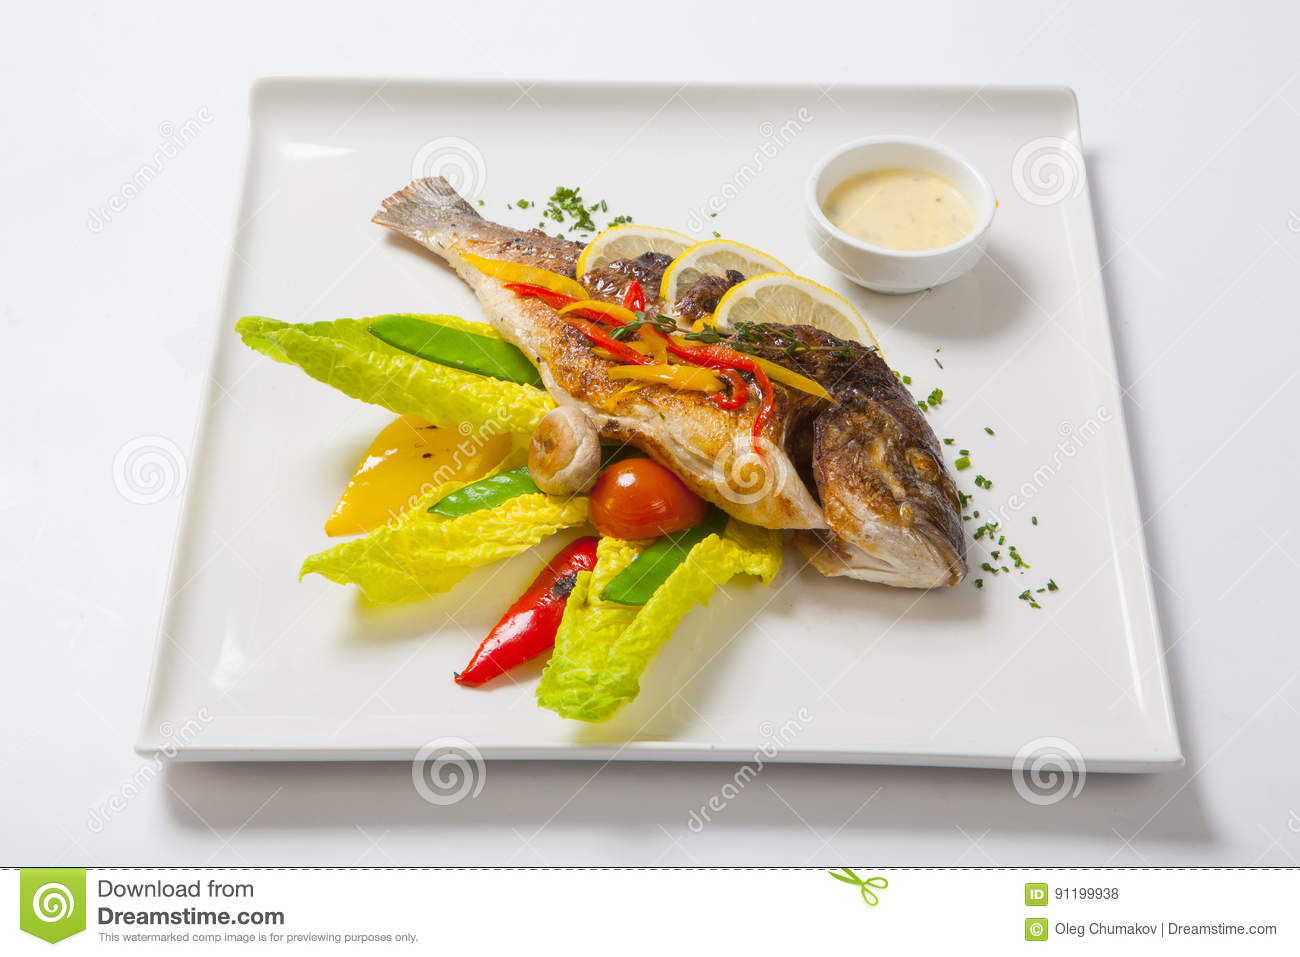 Grilled whole fish decorated with leaves of lettuce and cherry tomato, served with garlic sauce. Fried whole fish